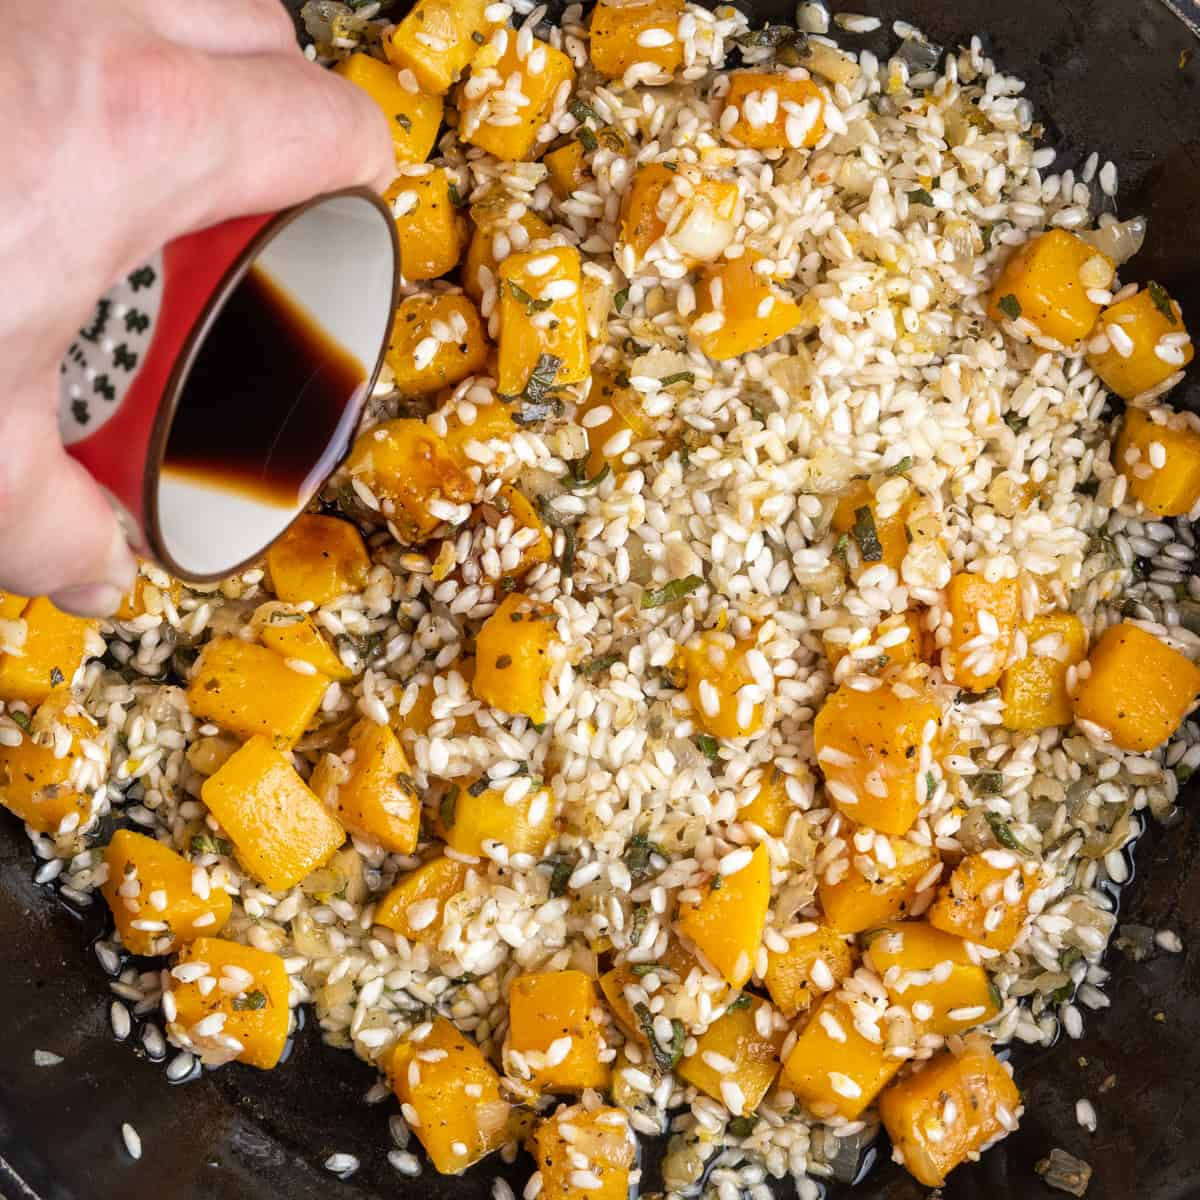 Pouring in soy sauce into the pan containing butternut and rice.